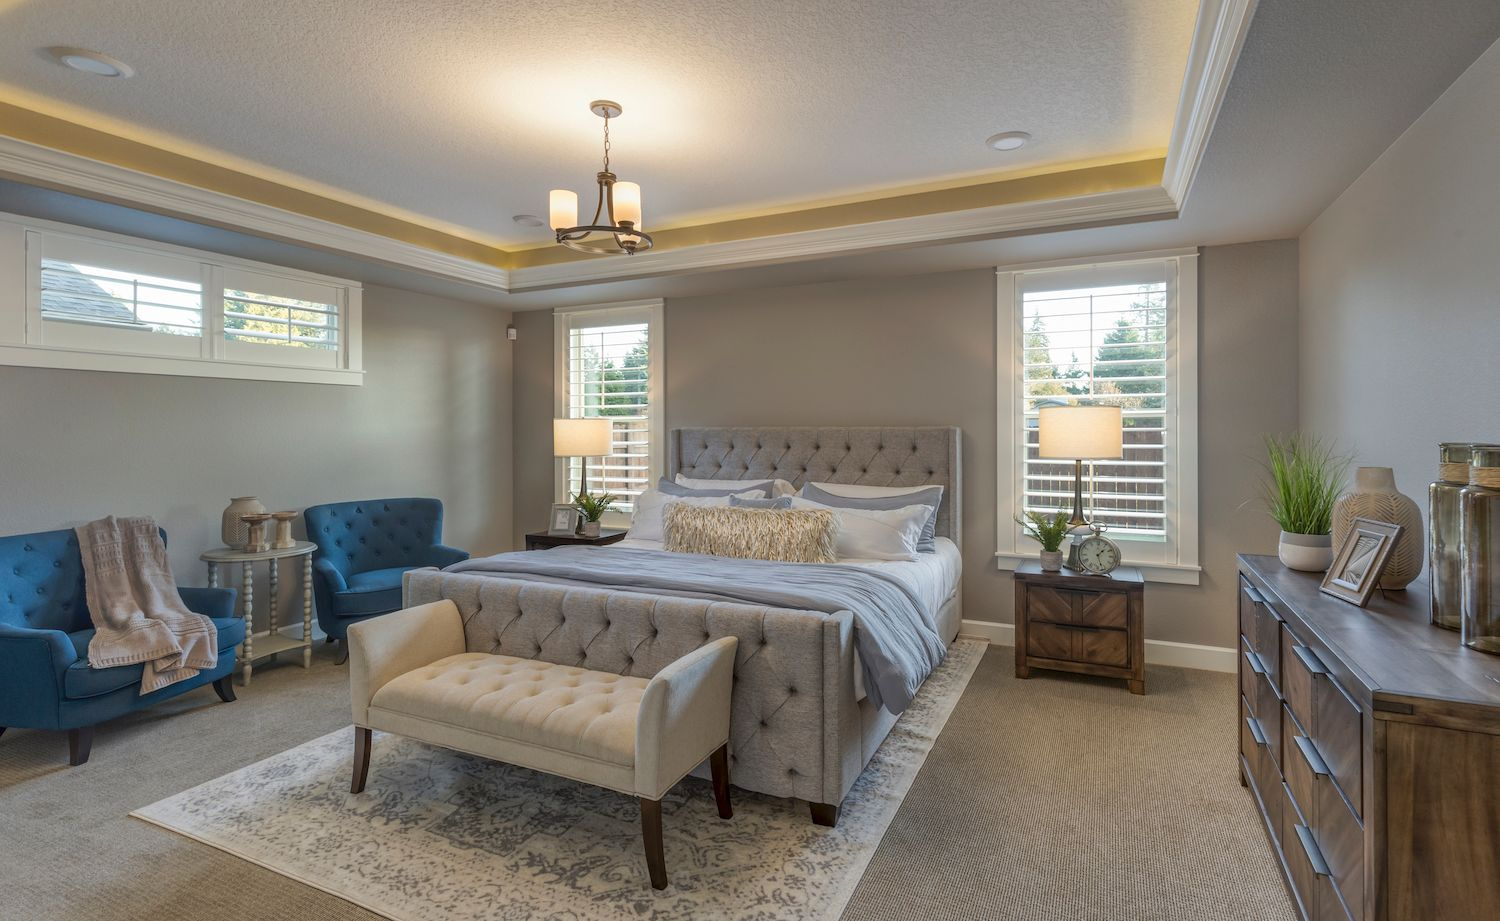 Bedroom featured in the Willamette By New Tradition Homes in Richland, WA